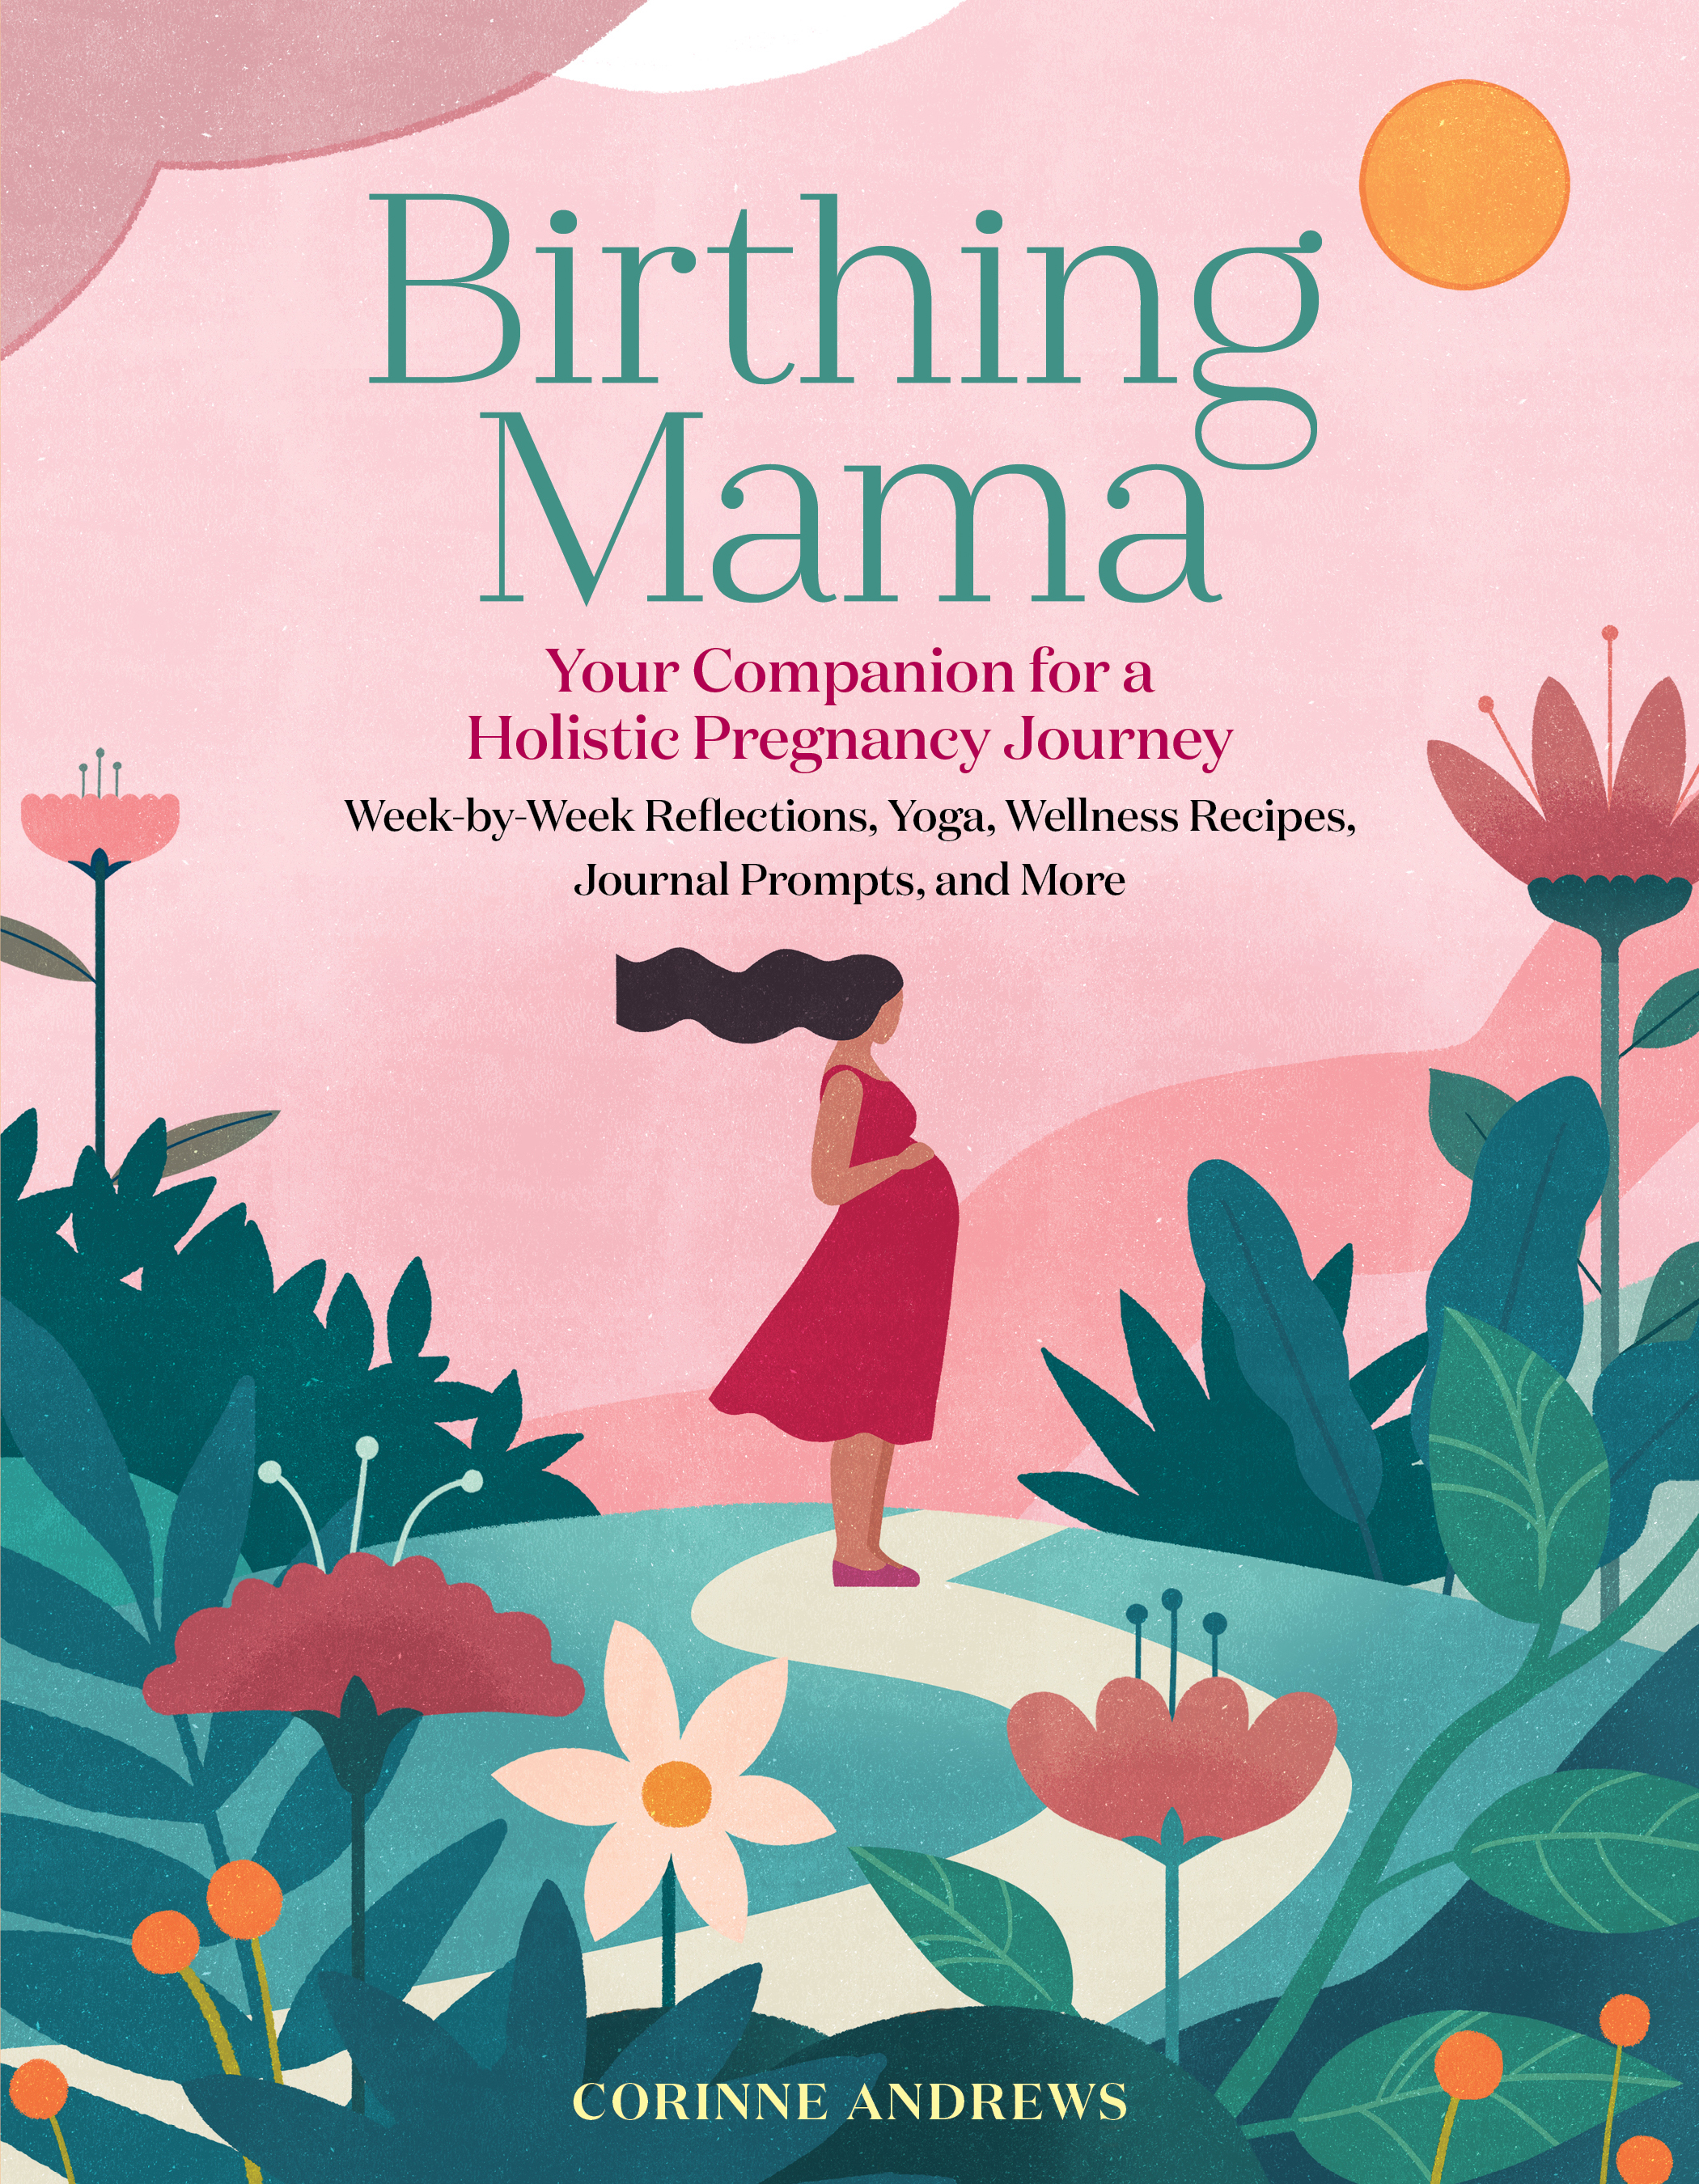 Birthing Mama Your Companion for a Wholistic Pregnancy Journey with Week-by-Week Reflections, Yoga, Wellness Recipes, Journal Prompts, and More - Corinne Andrews